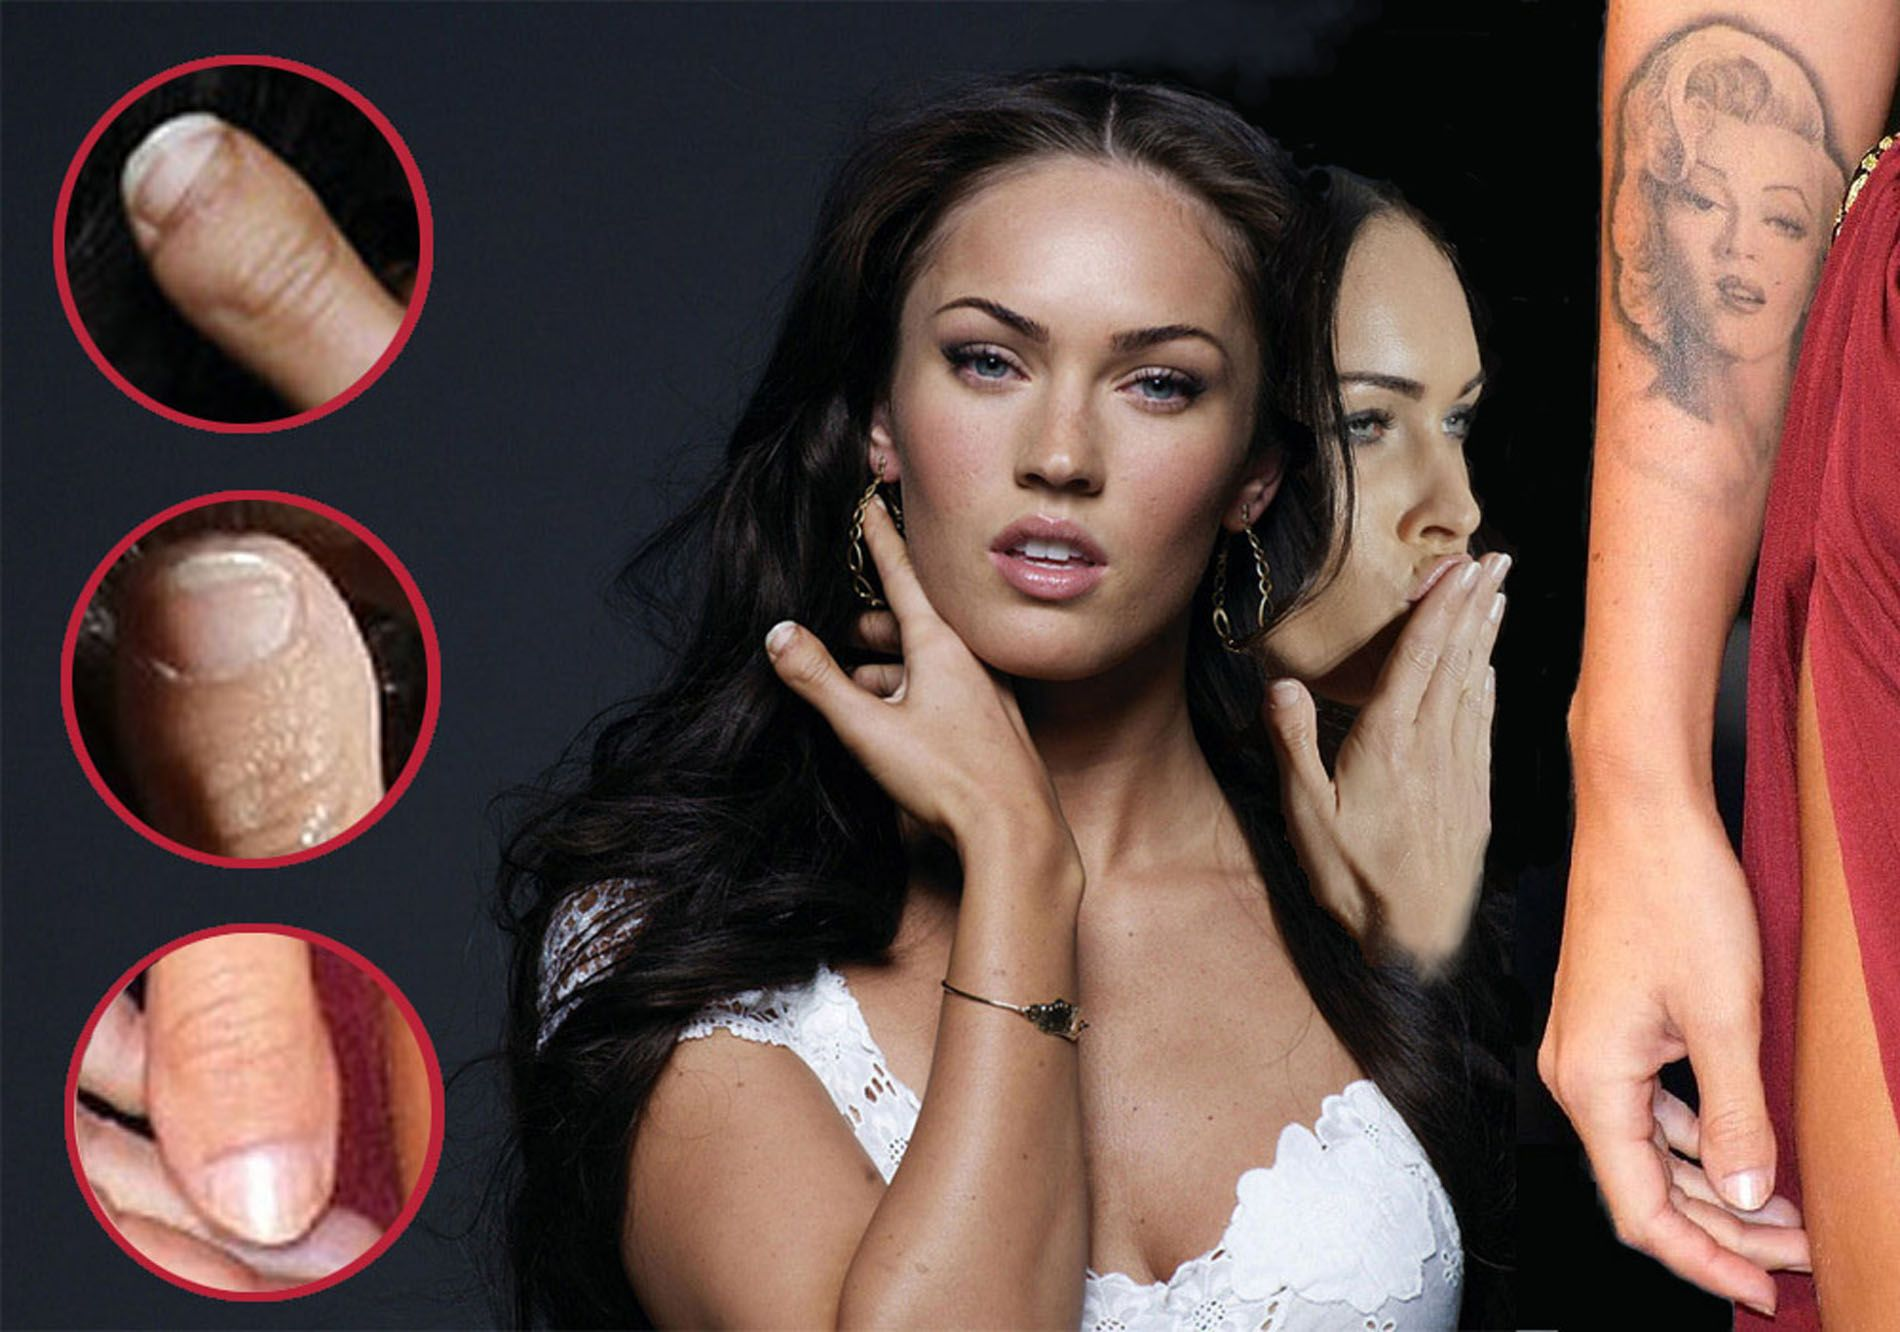 Megan Fox Thumbs Tribute She Talked About Her Clubbed Thumb